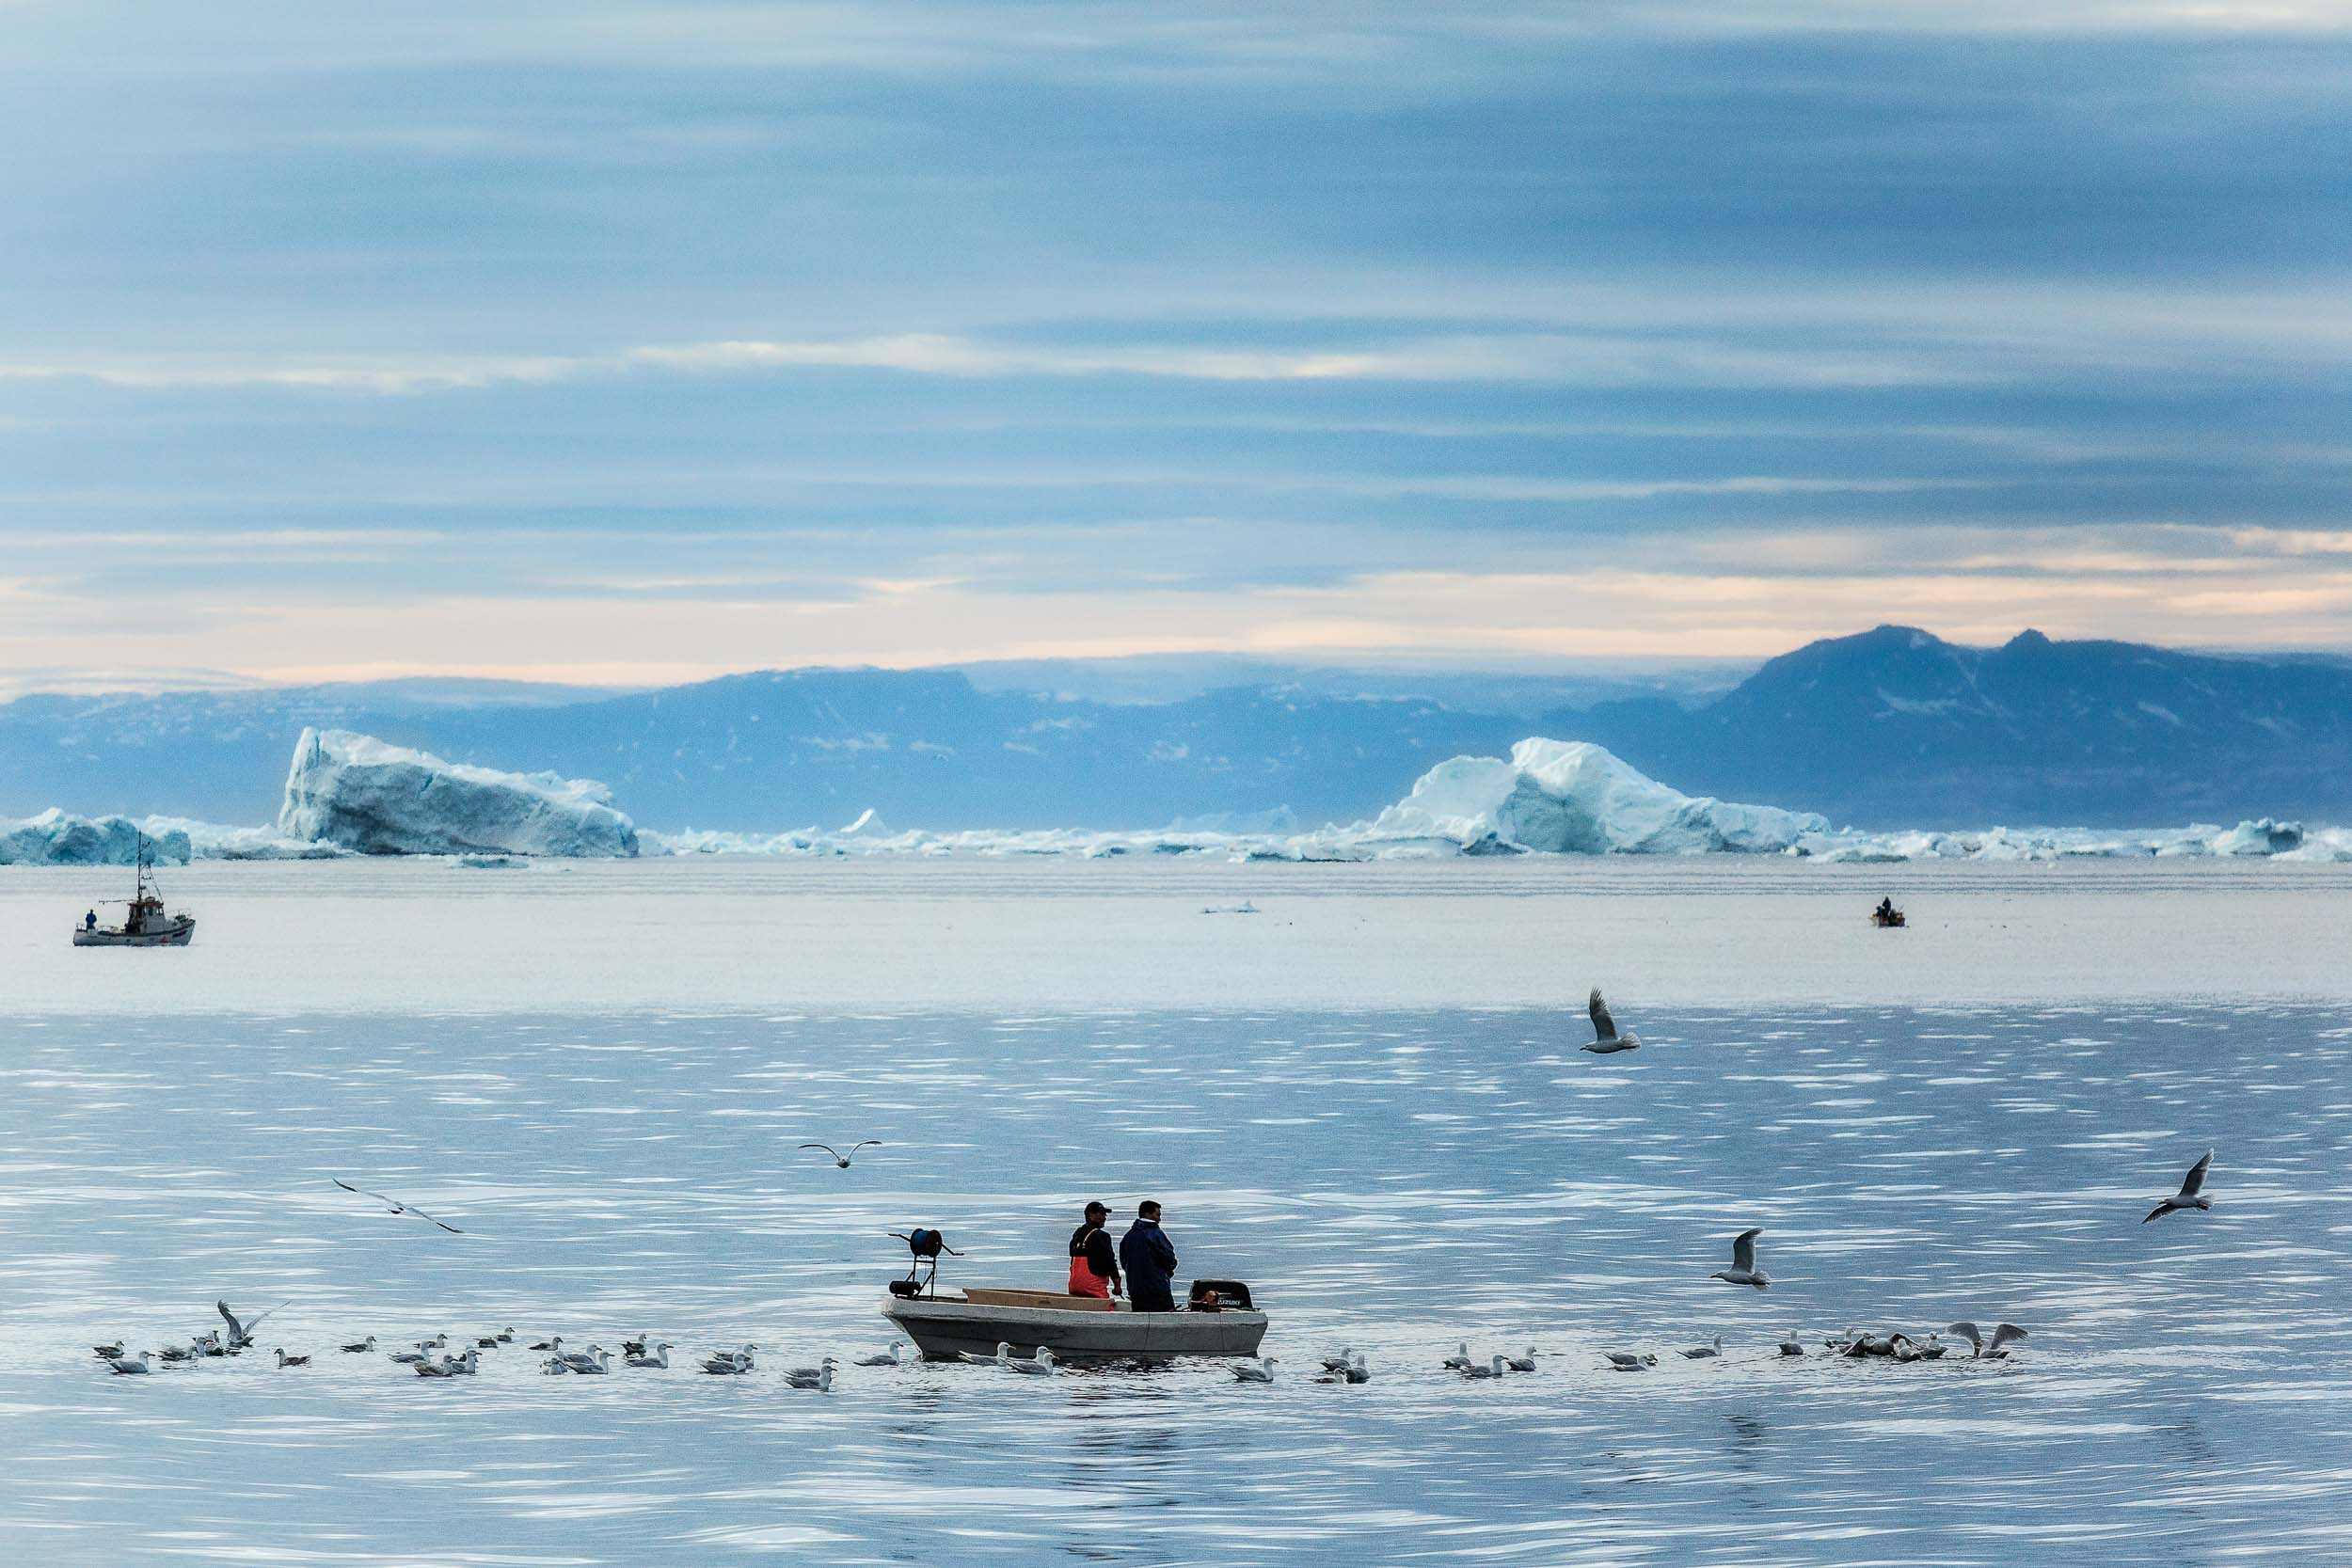 Local fisherman    on the    Ilulissat Icefjord    near the town of    Ilulissat    in    Western Greenland   .